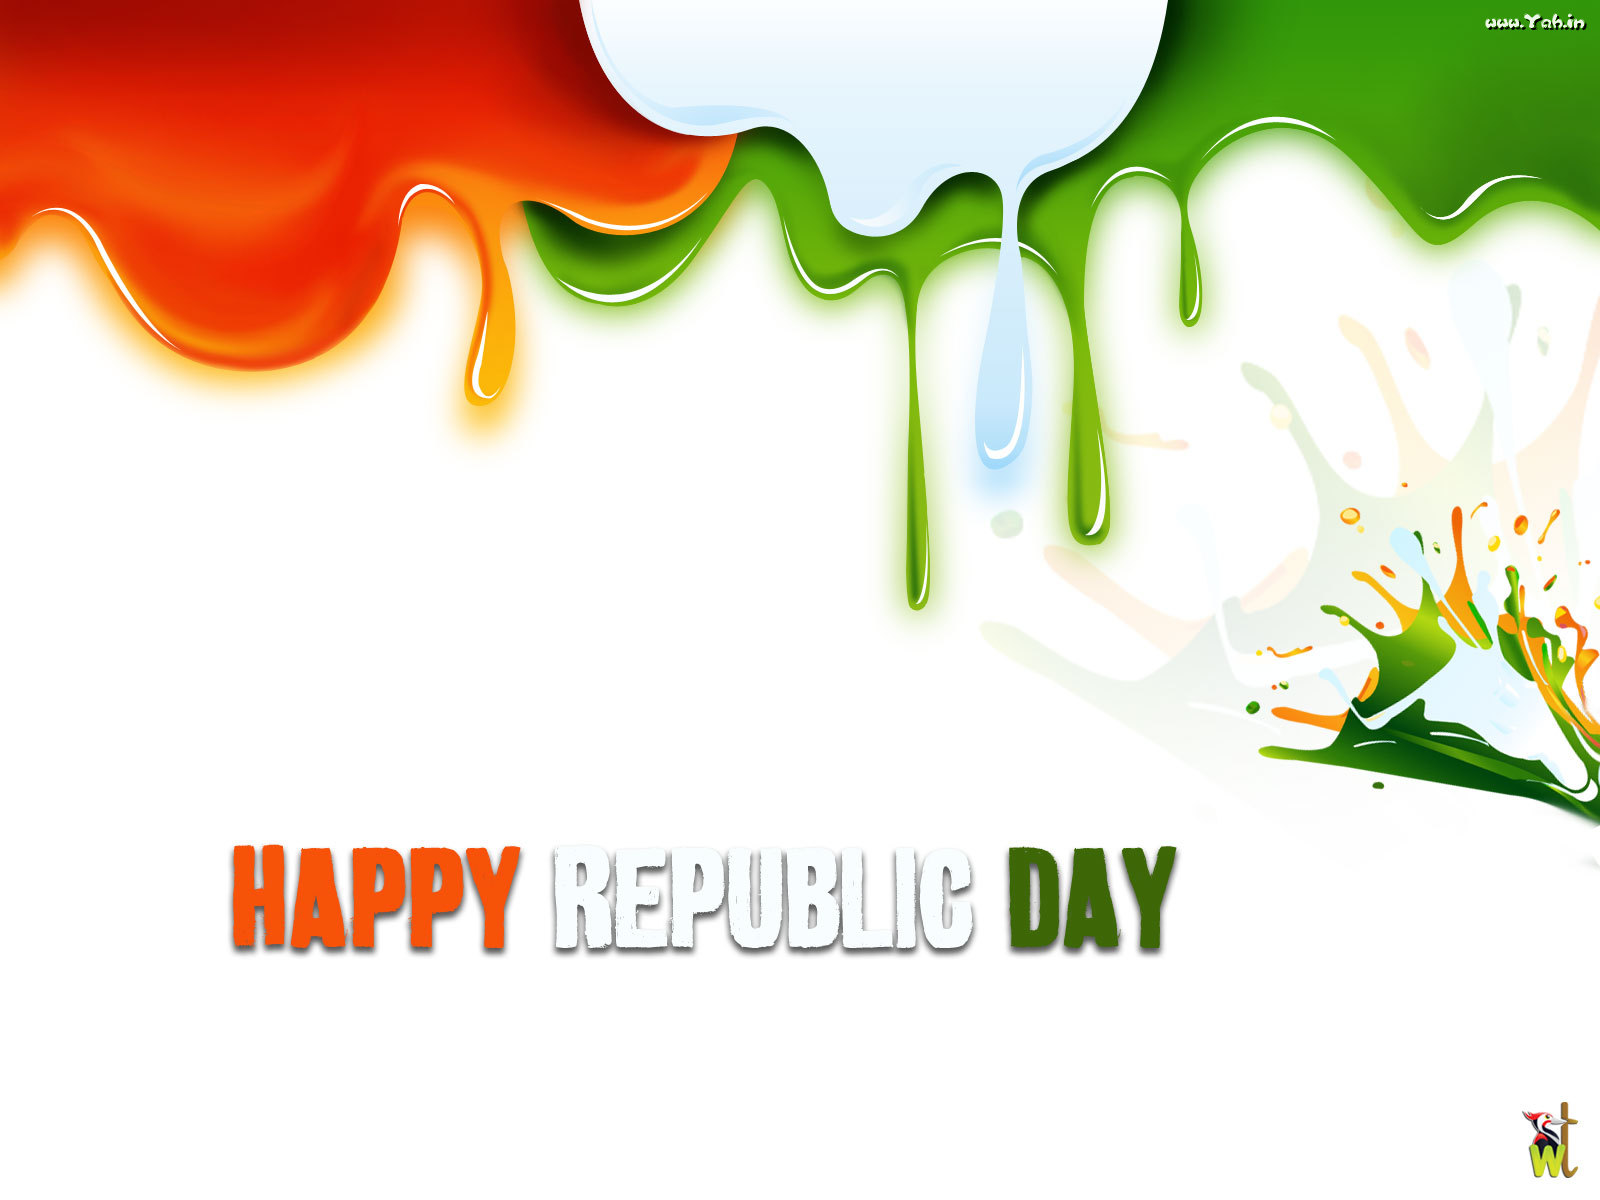 http://3.bp.blogspot.com/-QA96aIwrgNY/Tx1lX85x2pI/AAAAAAAAF5Q/w8VVuswJ4Ds/s1600/Republic-Day-Wallpapers+%25282%2529.jpg